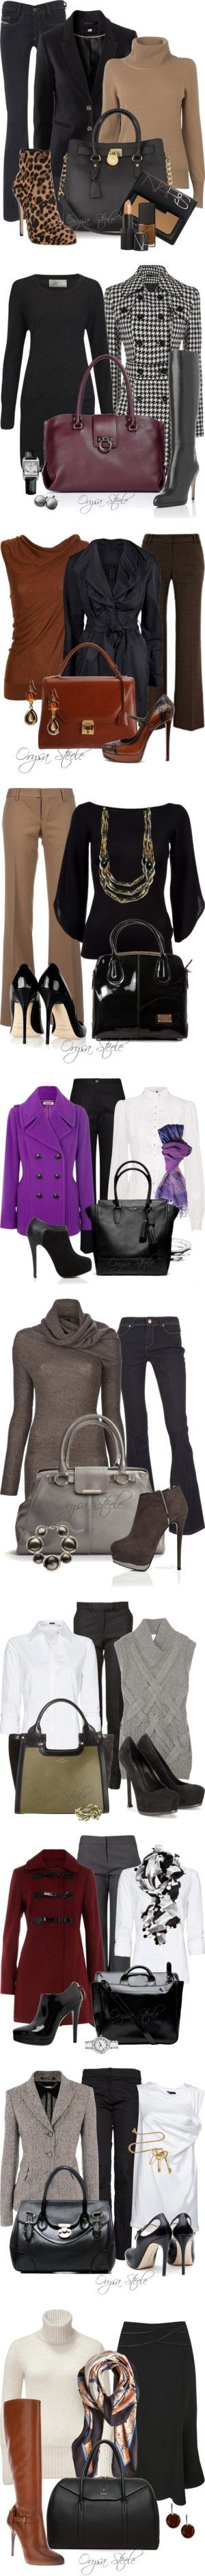 """Dressed Up for Fall"" by orysa on Polyvore"